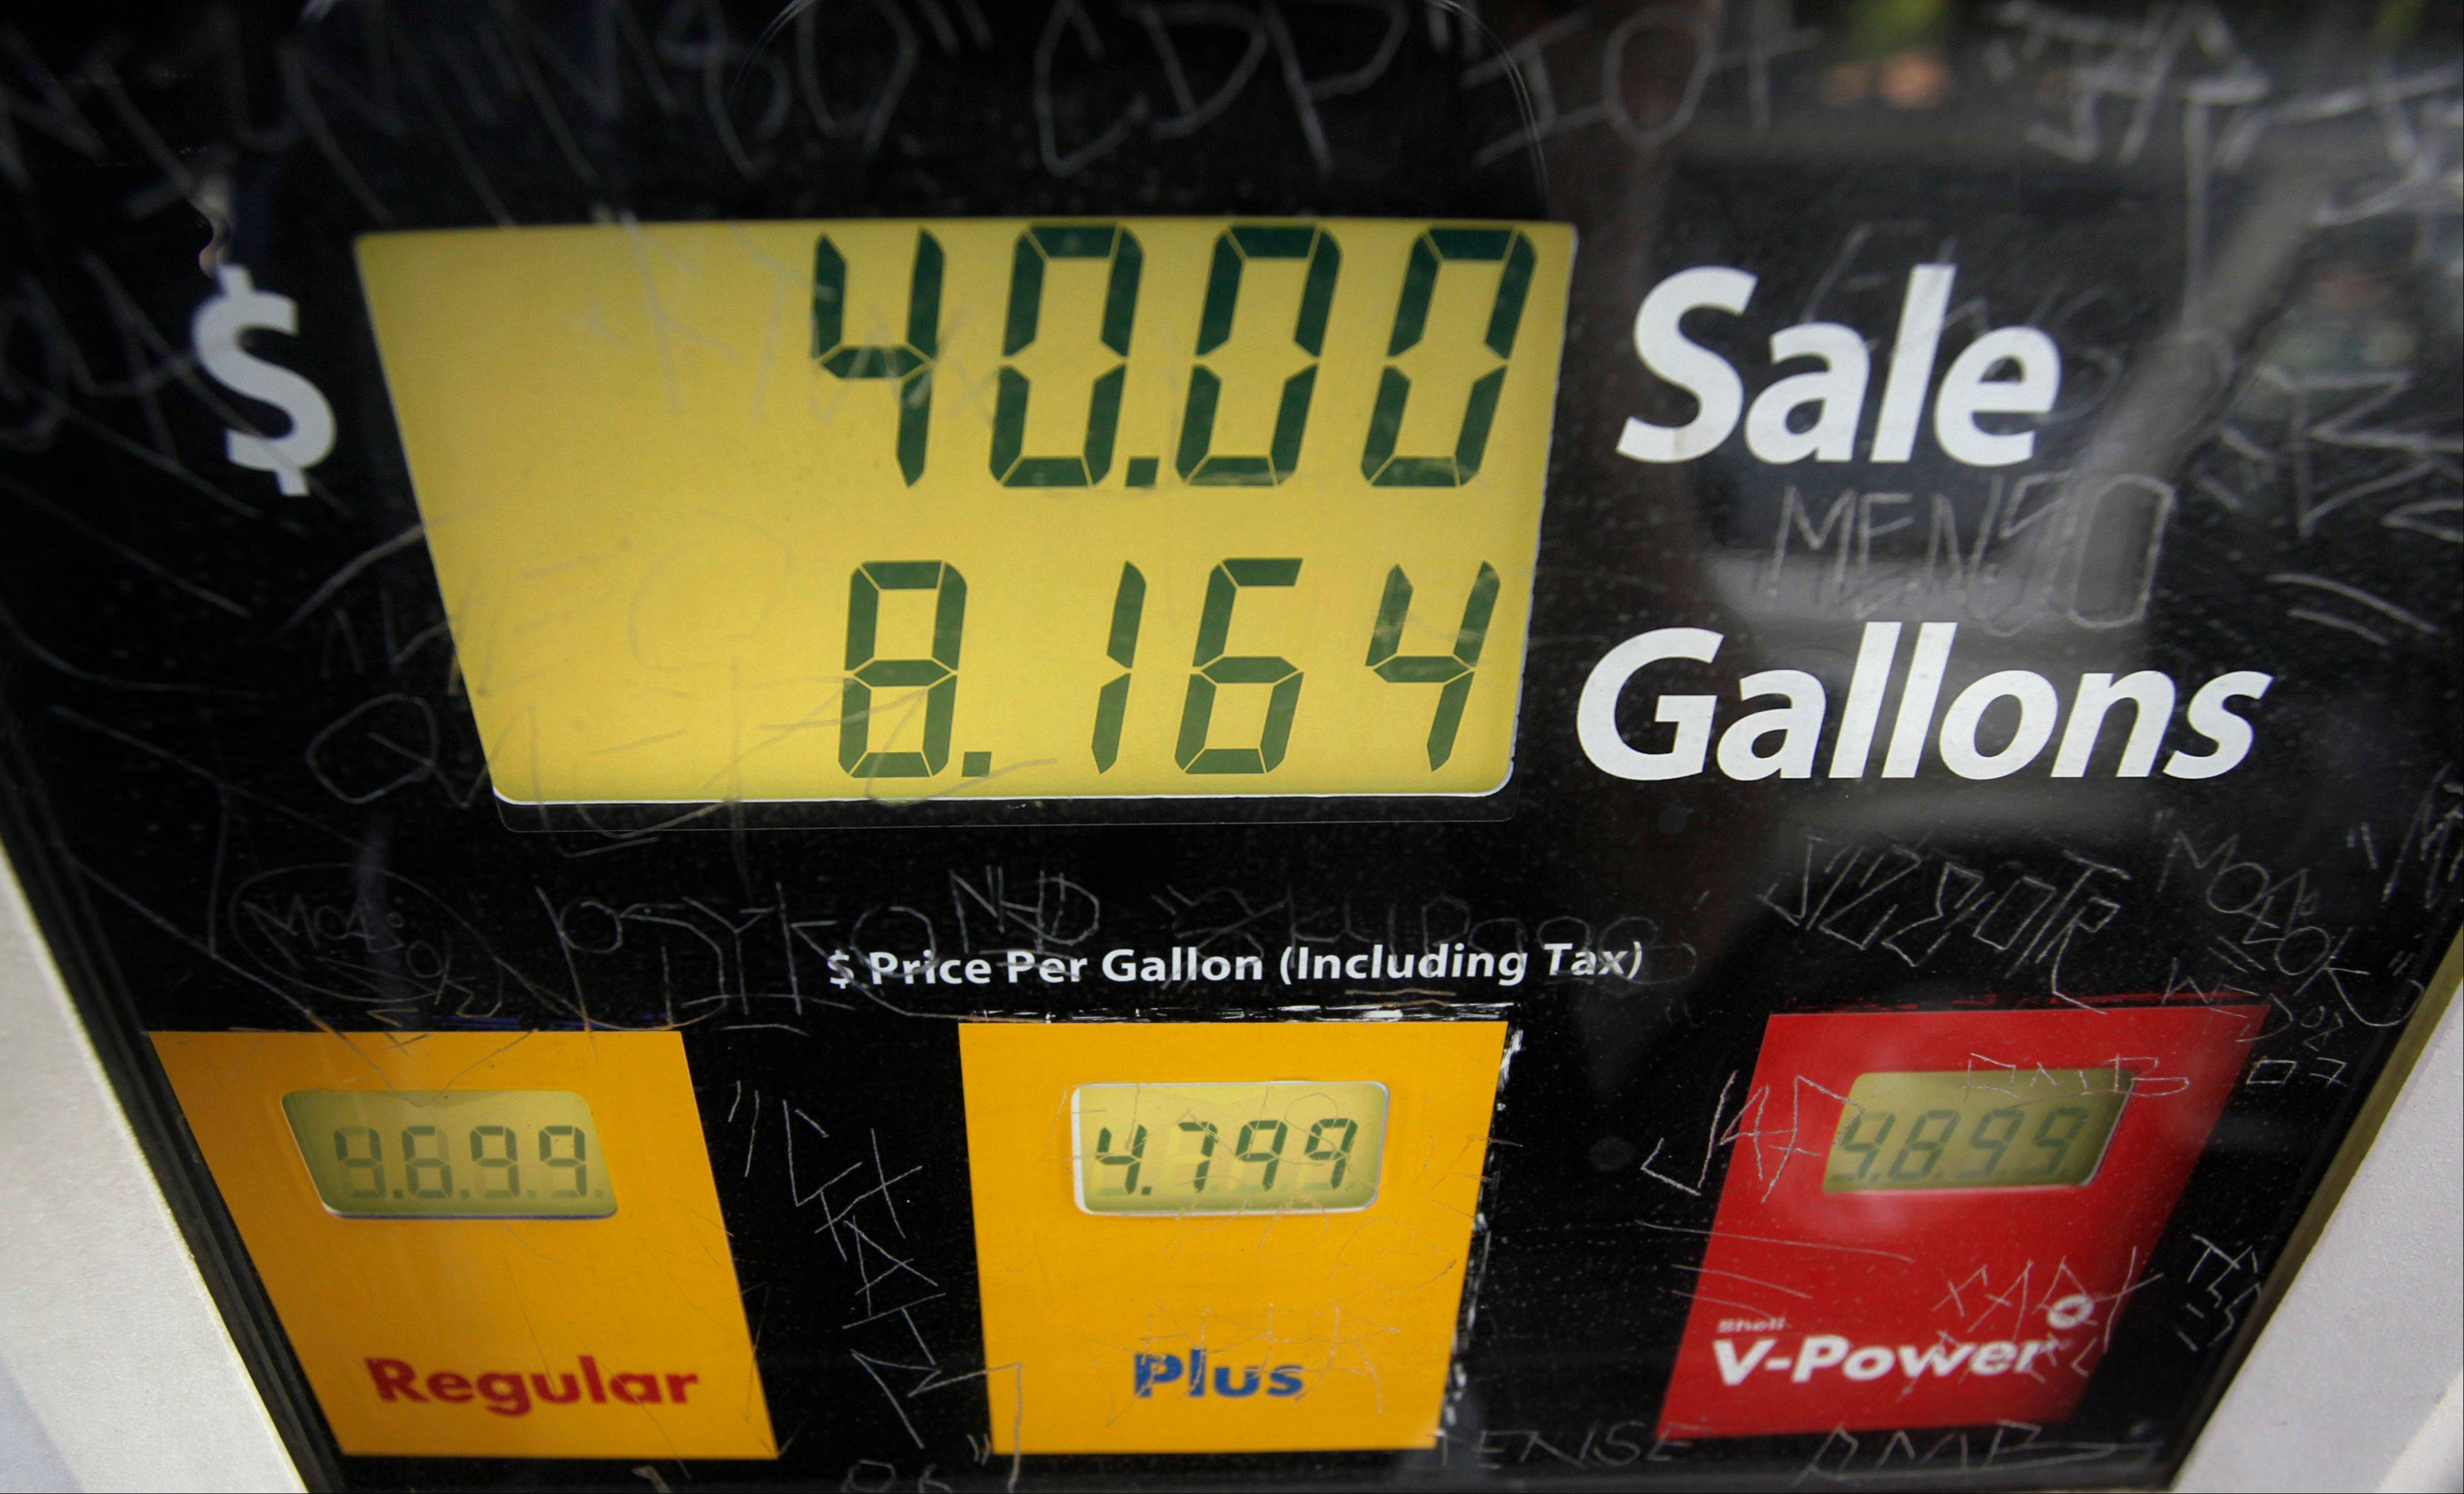 At long last, gas prices are falling across the U.S. In the last two weeks, prices fell 8.46 cents to $3.7529 a gallon.